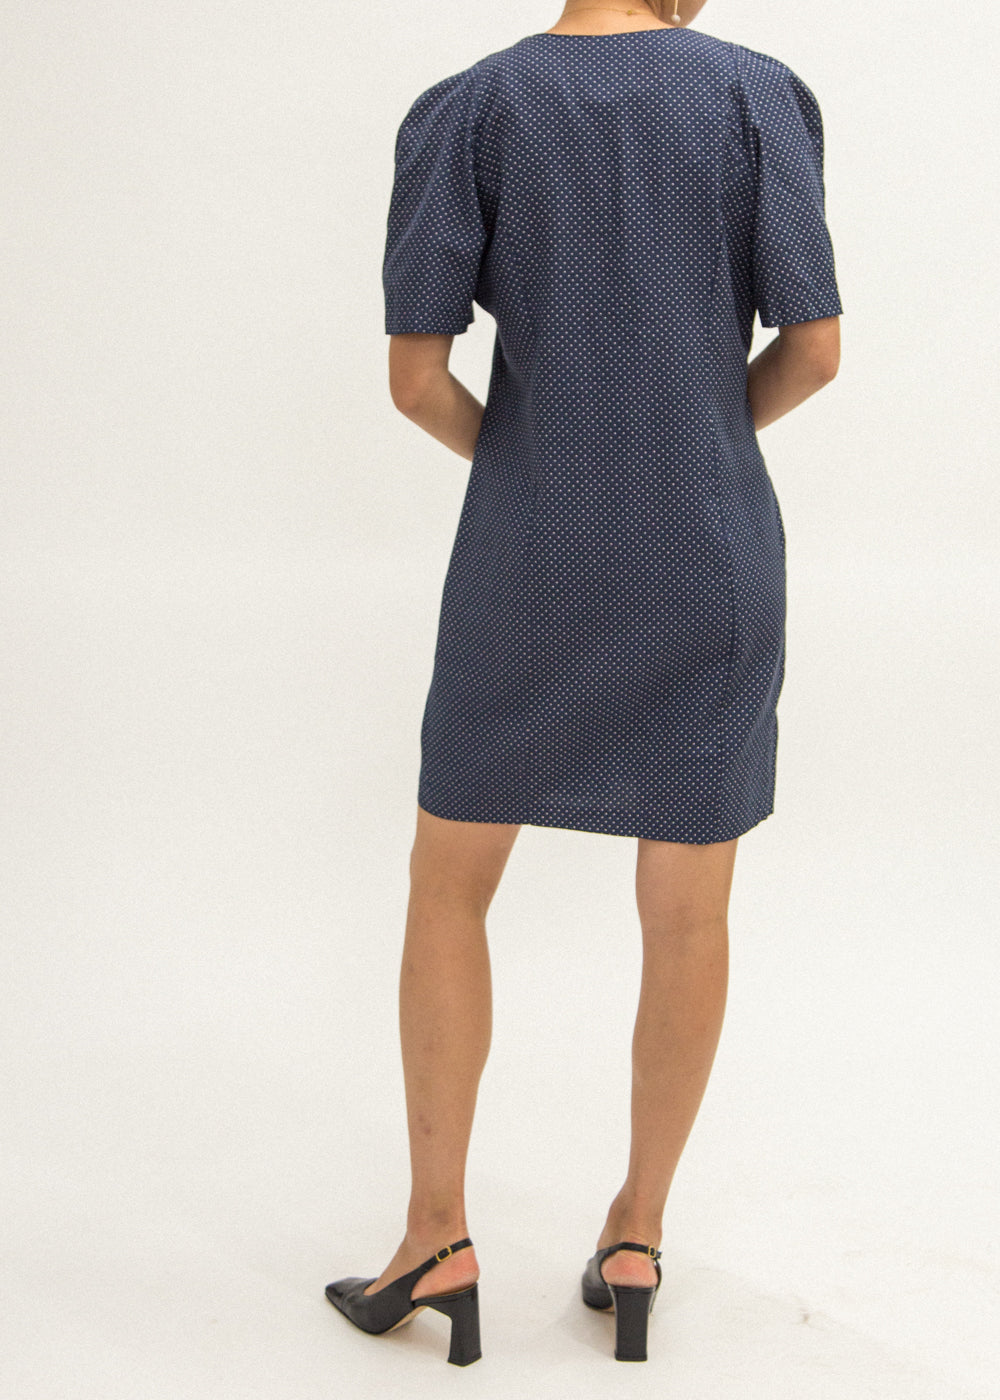 Pre by New Classics Vintage Navy Polka Dot Dress — Shop sustainable fashion and slow fashion at New Classics Studios